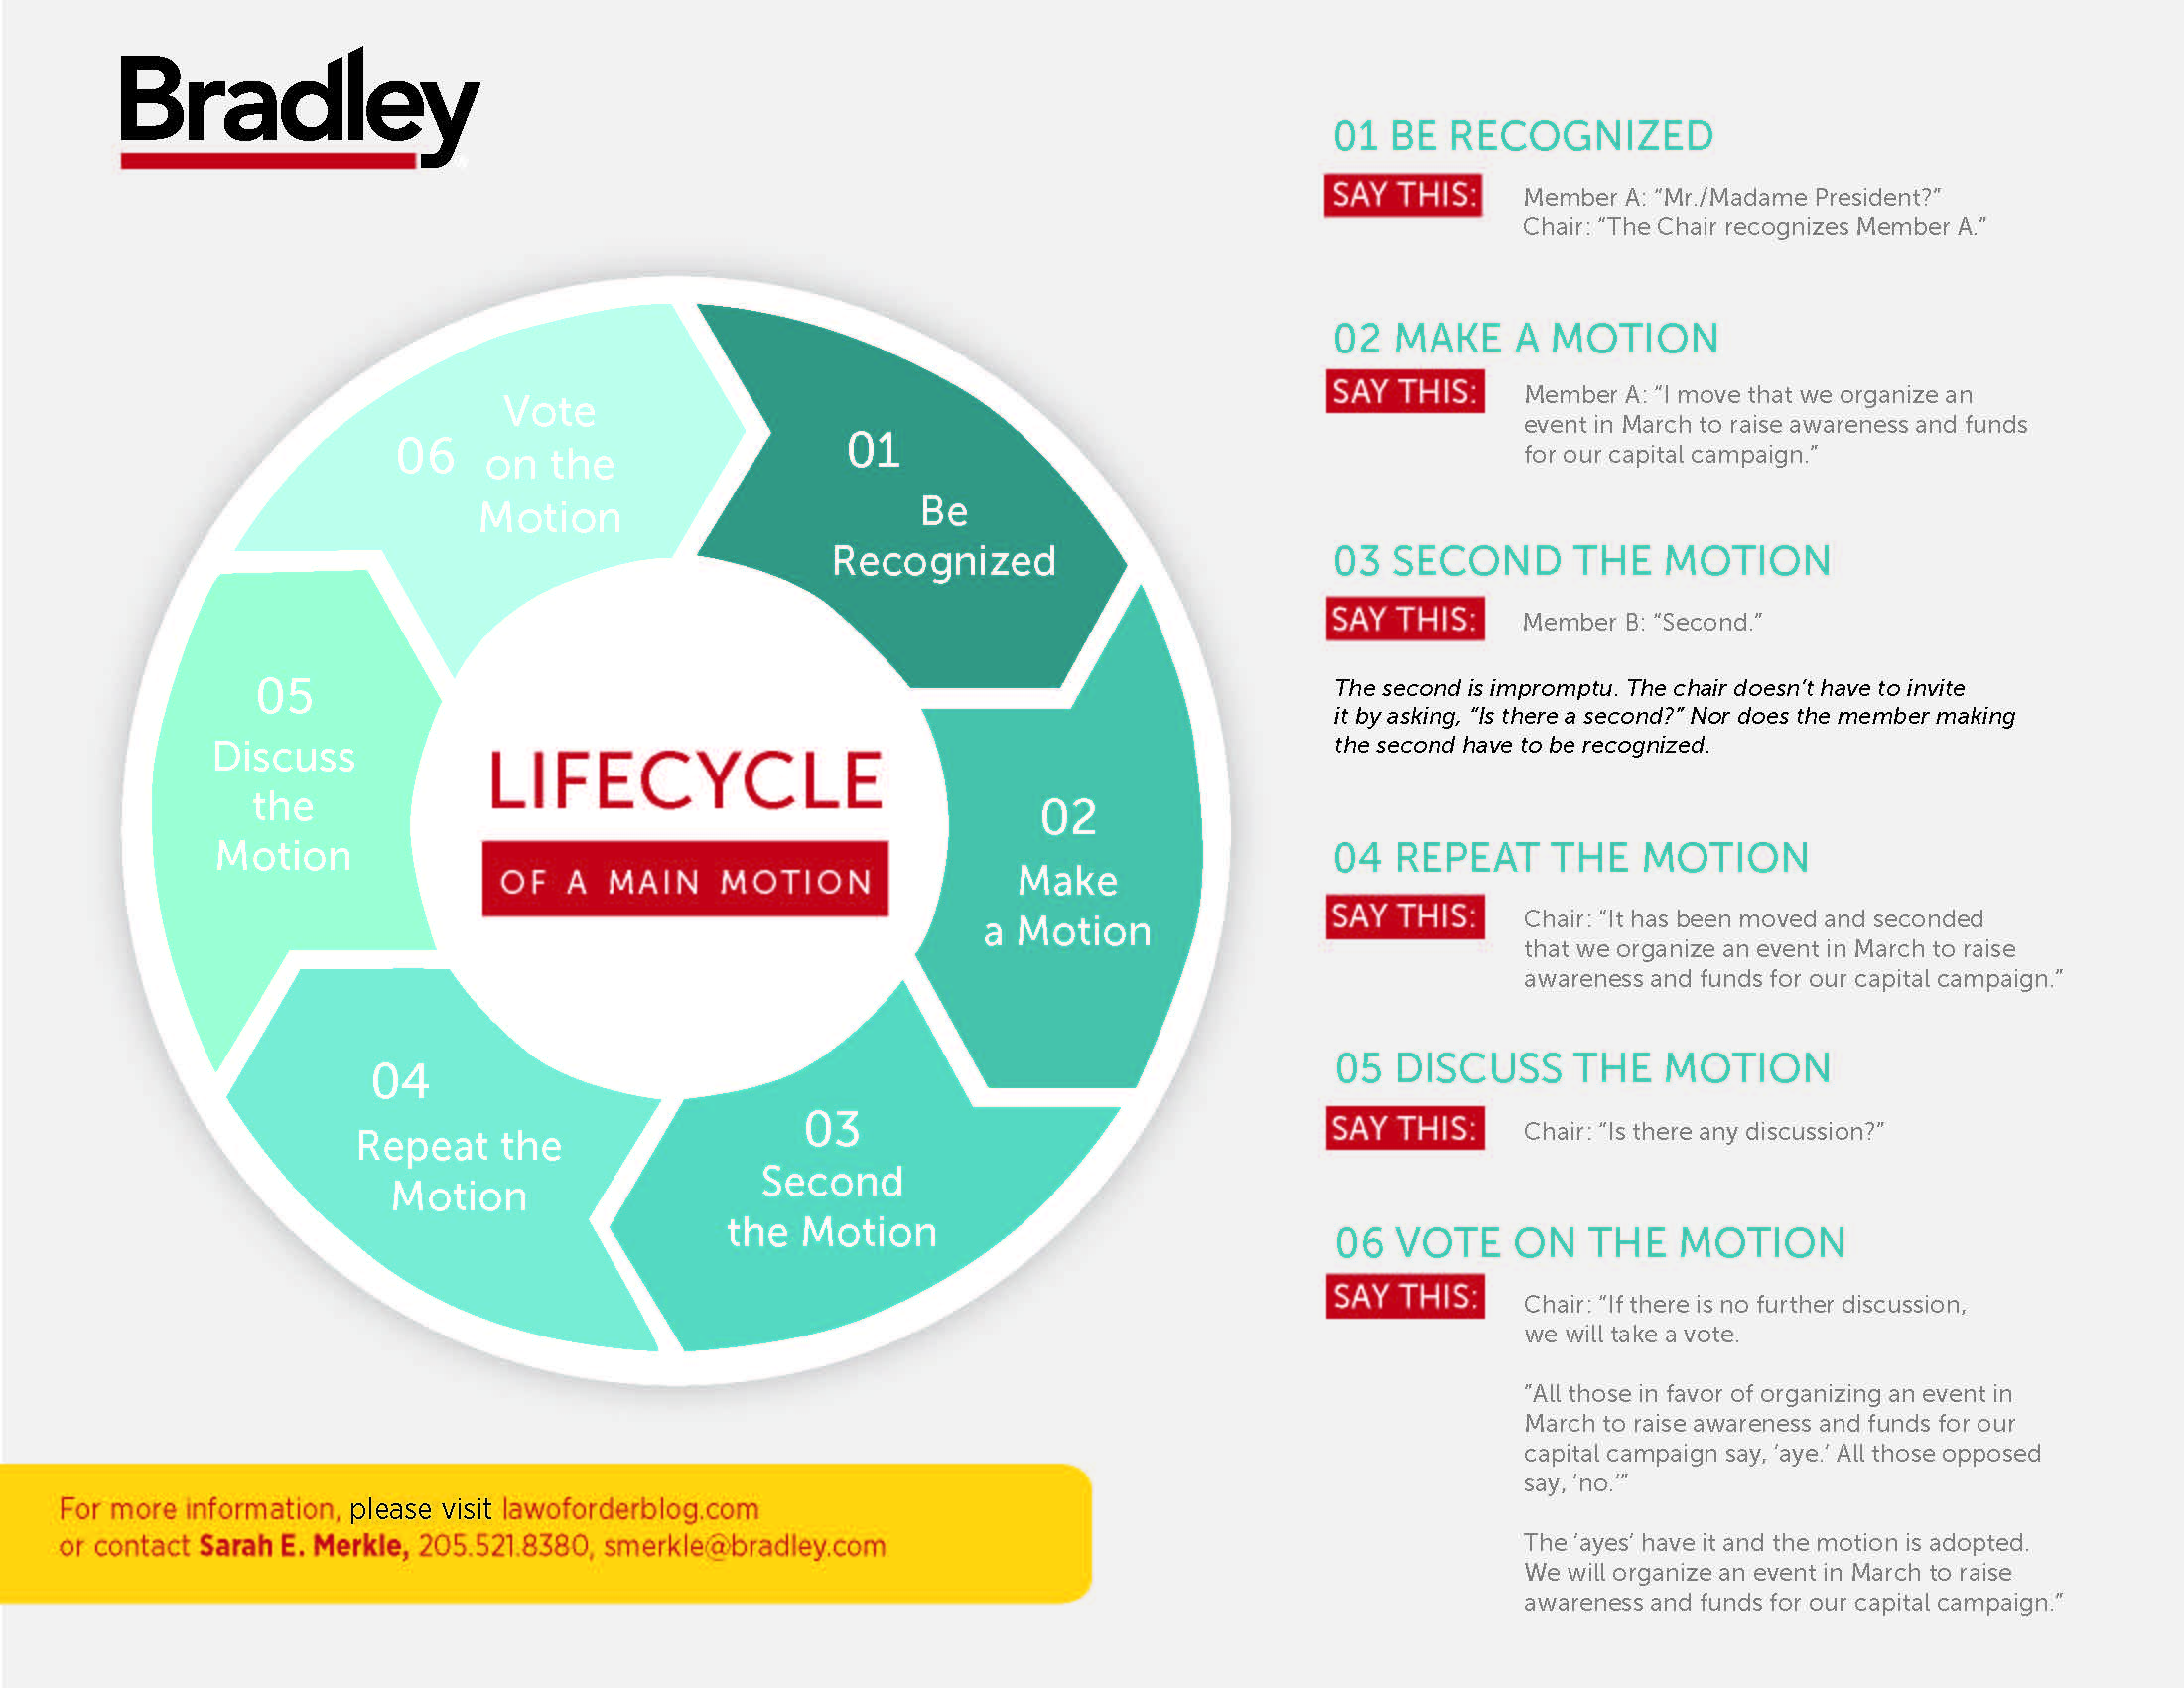 Lifecycle of A Main Motion Infographic